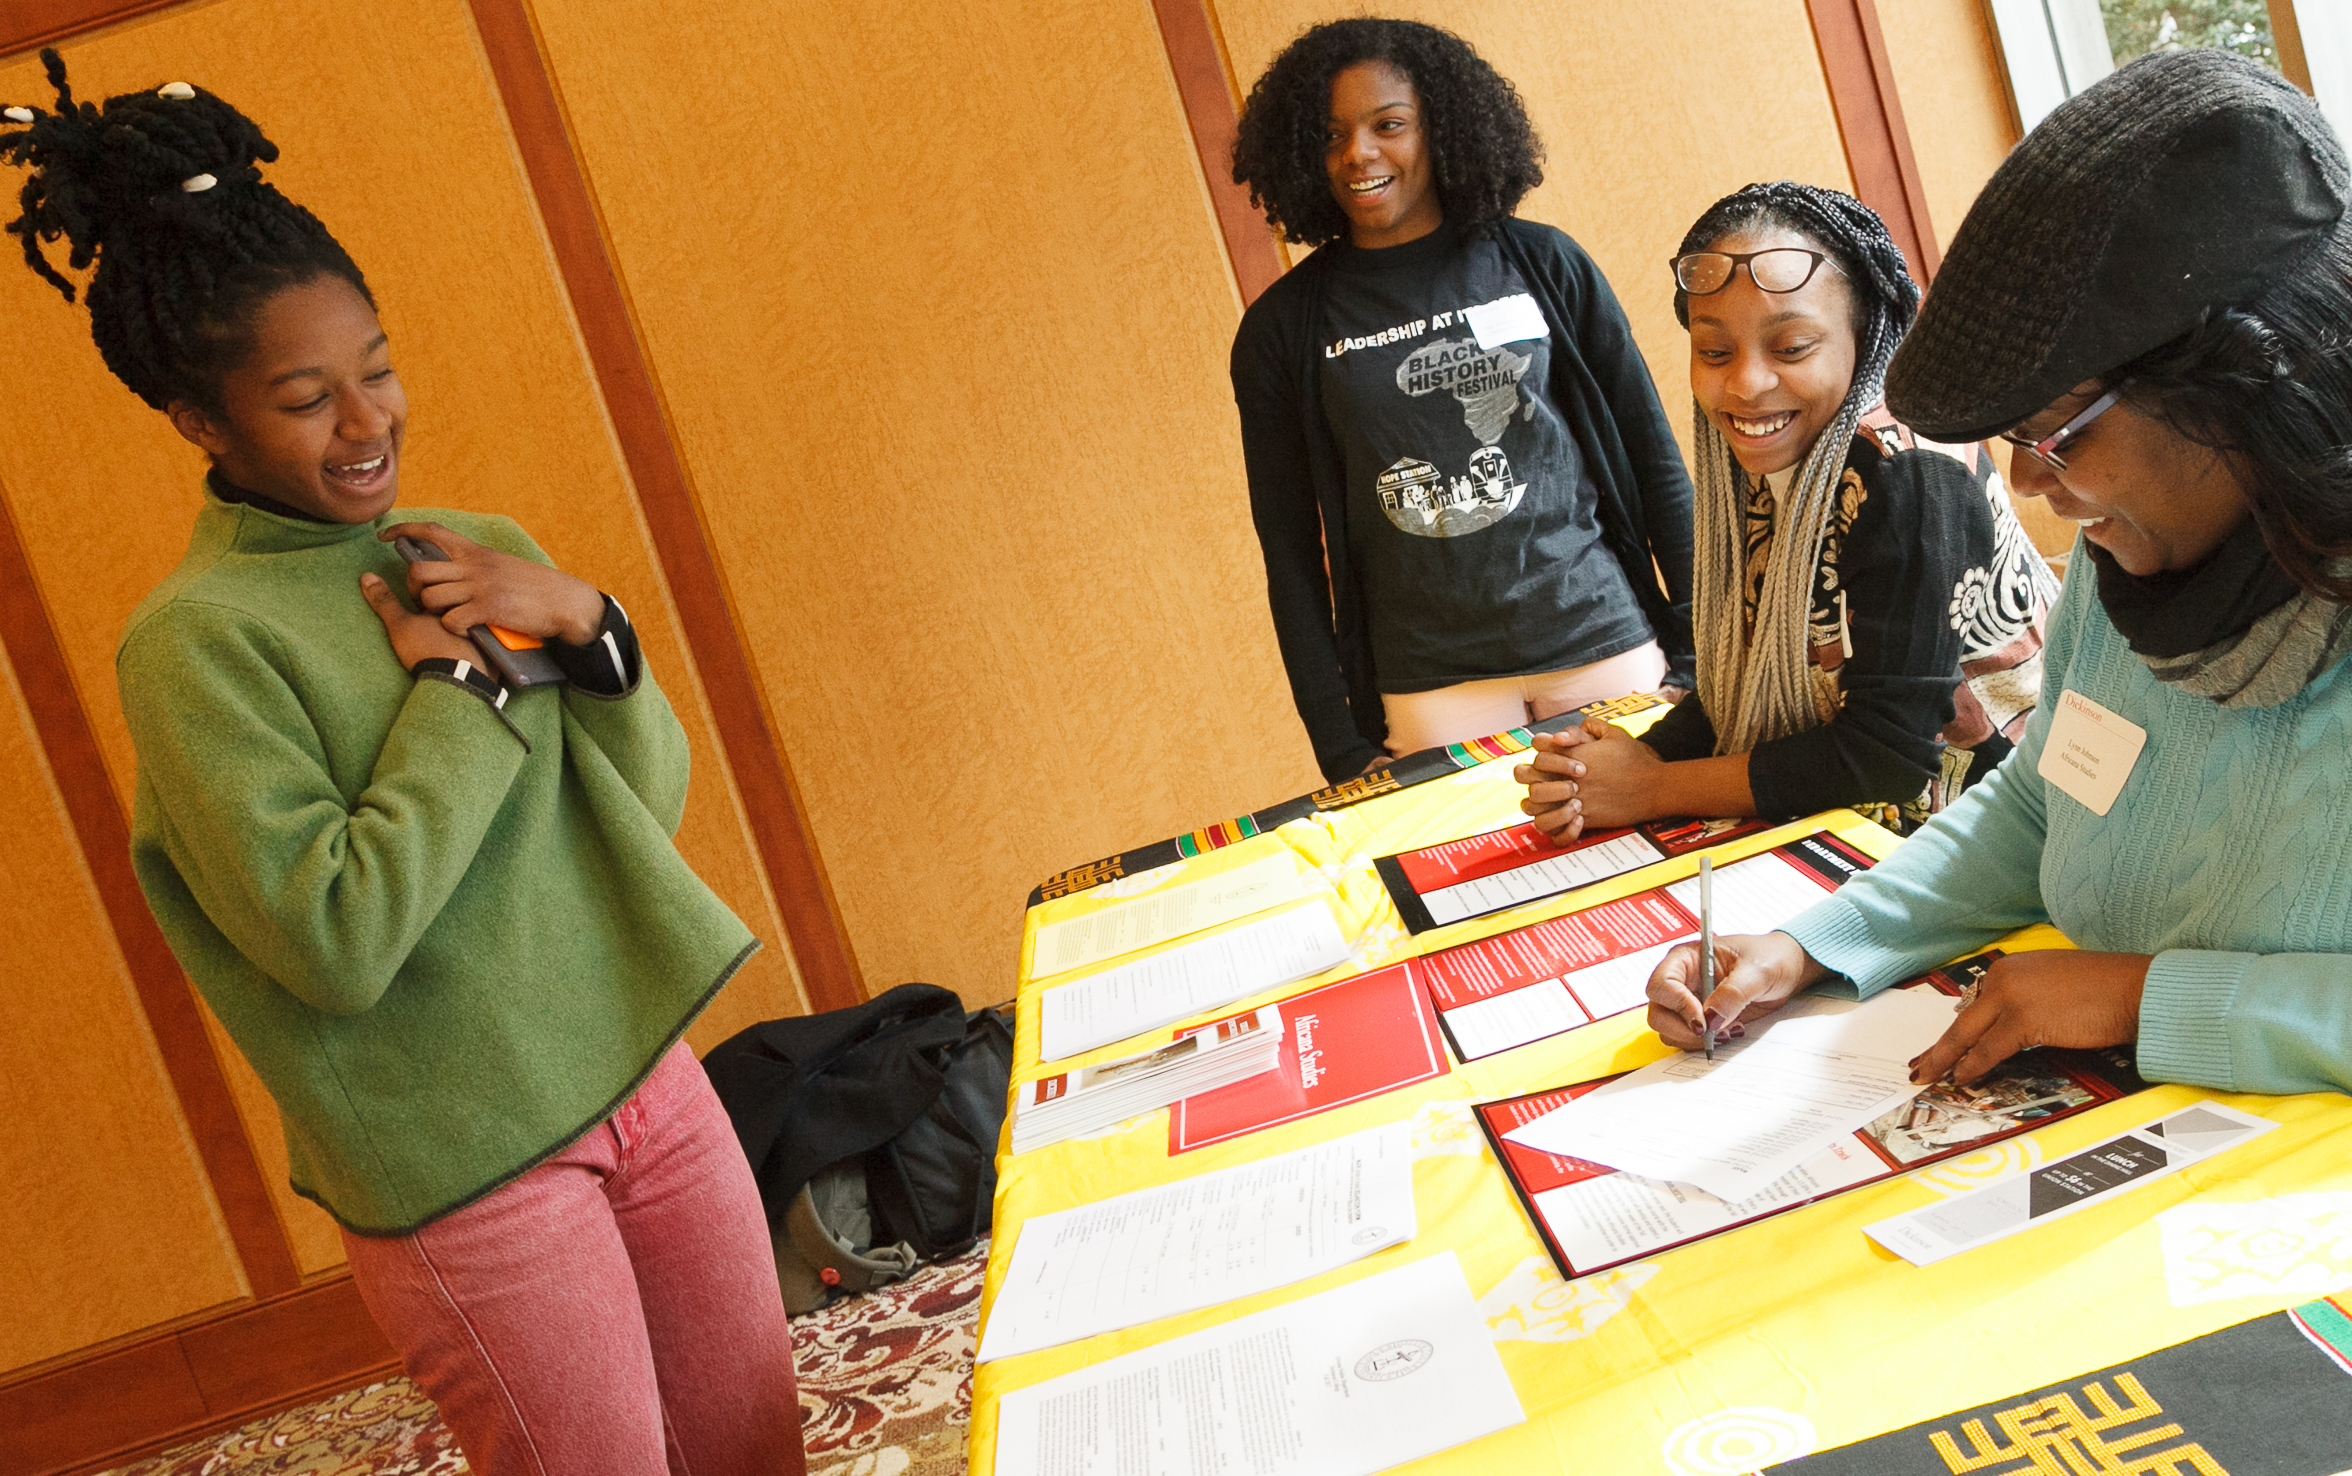 Students in the Africana Studies program